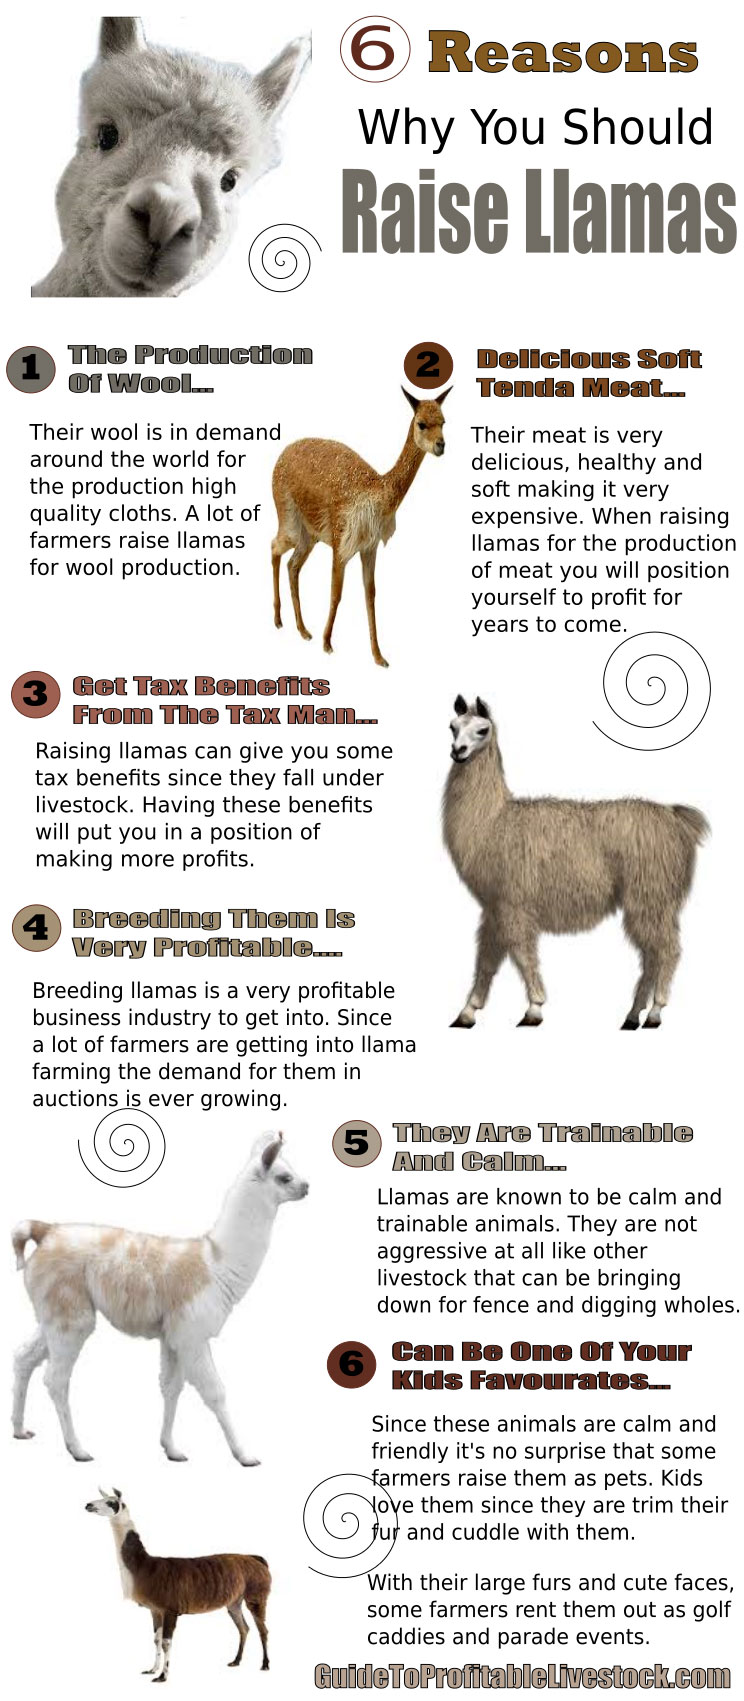 Reasons To Raise Llamas